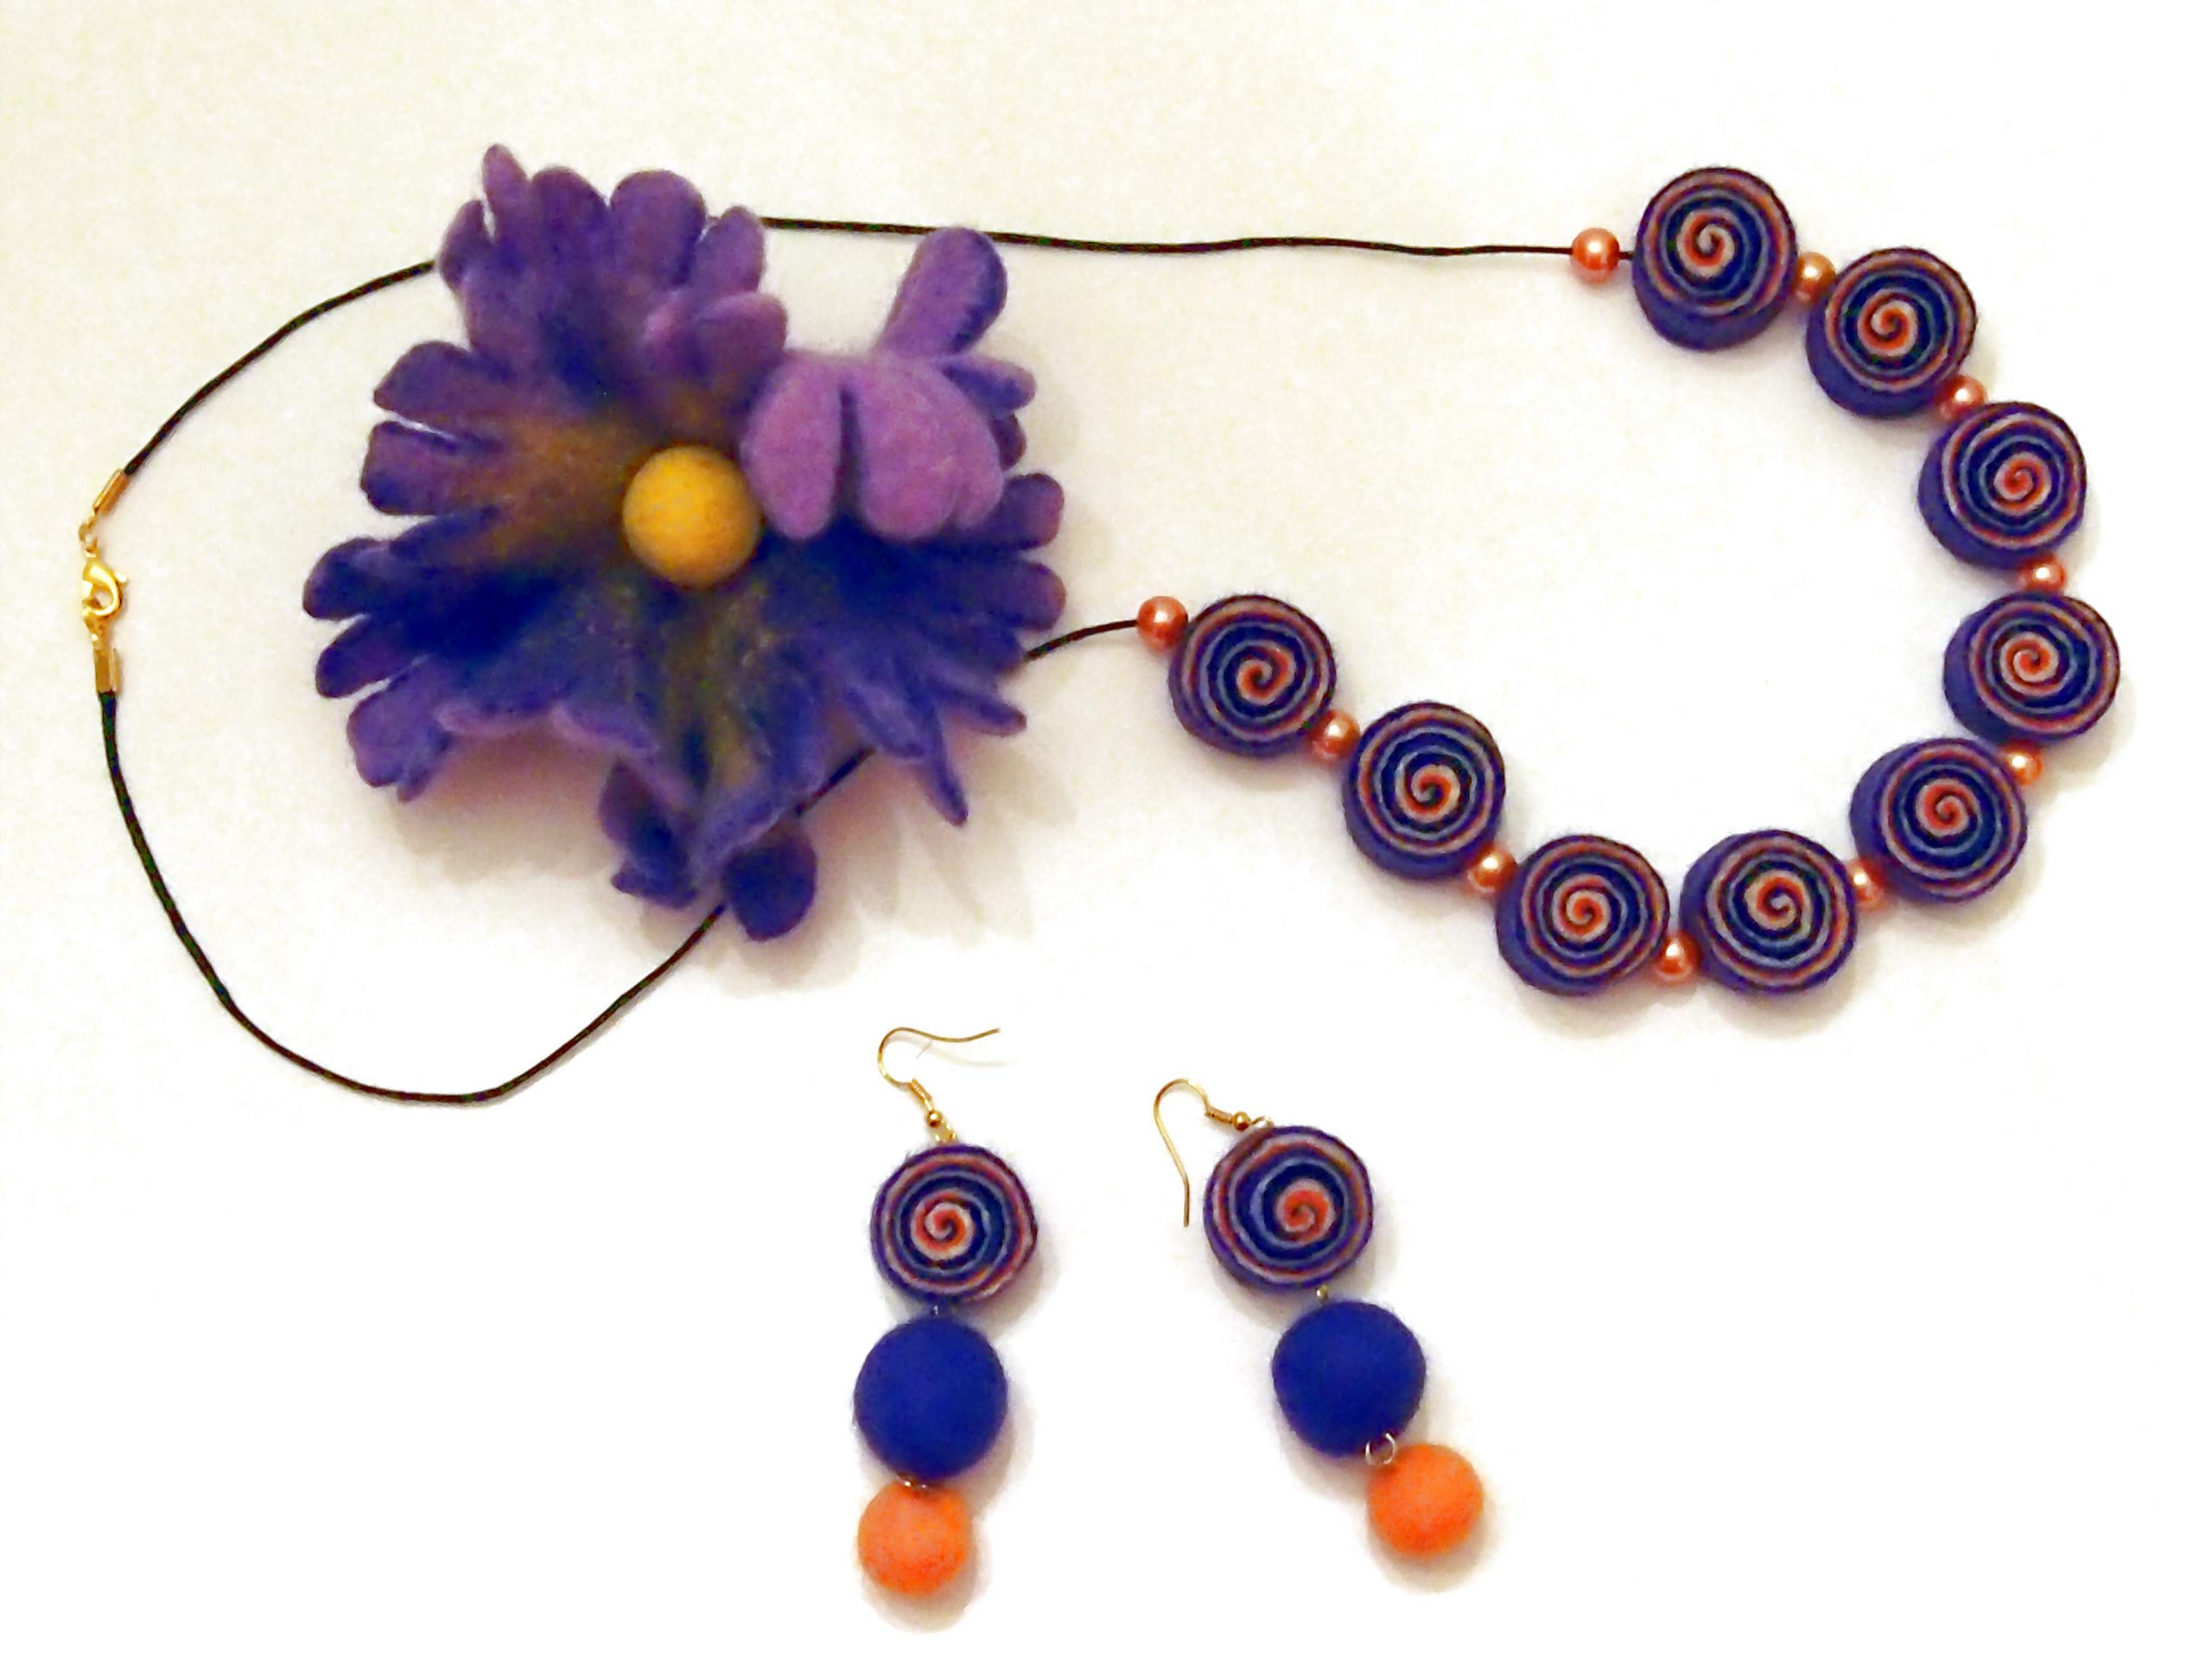 Handmade felted Jewellery art course in Worcestershire